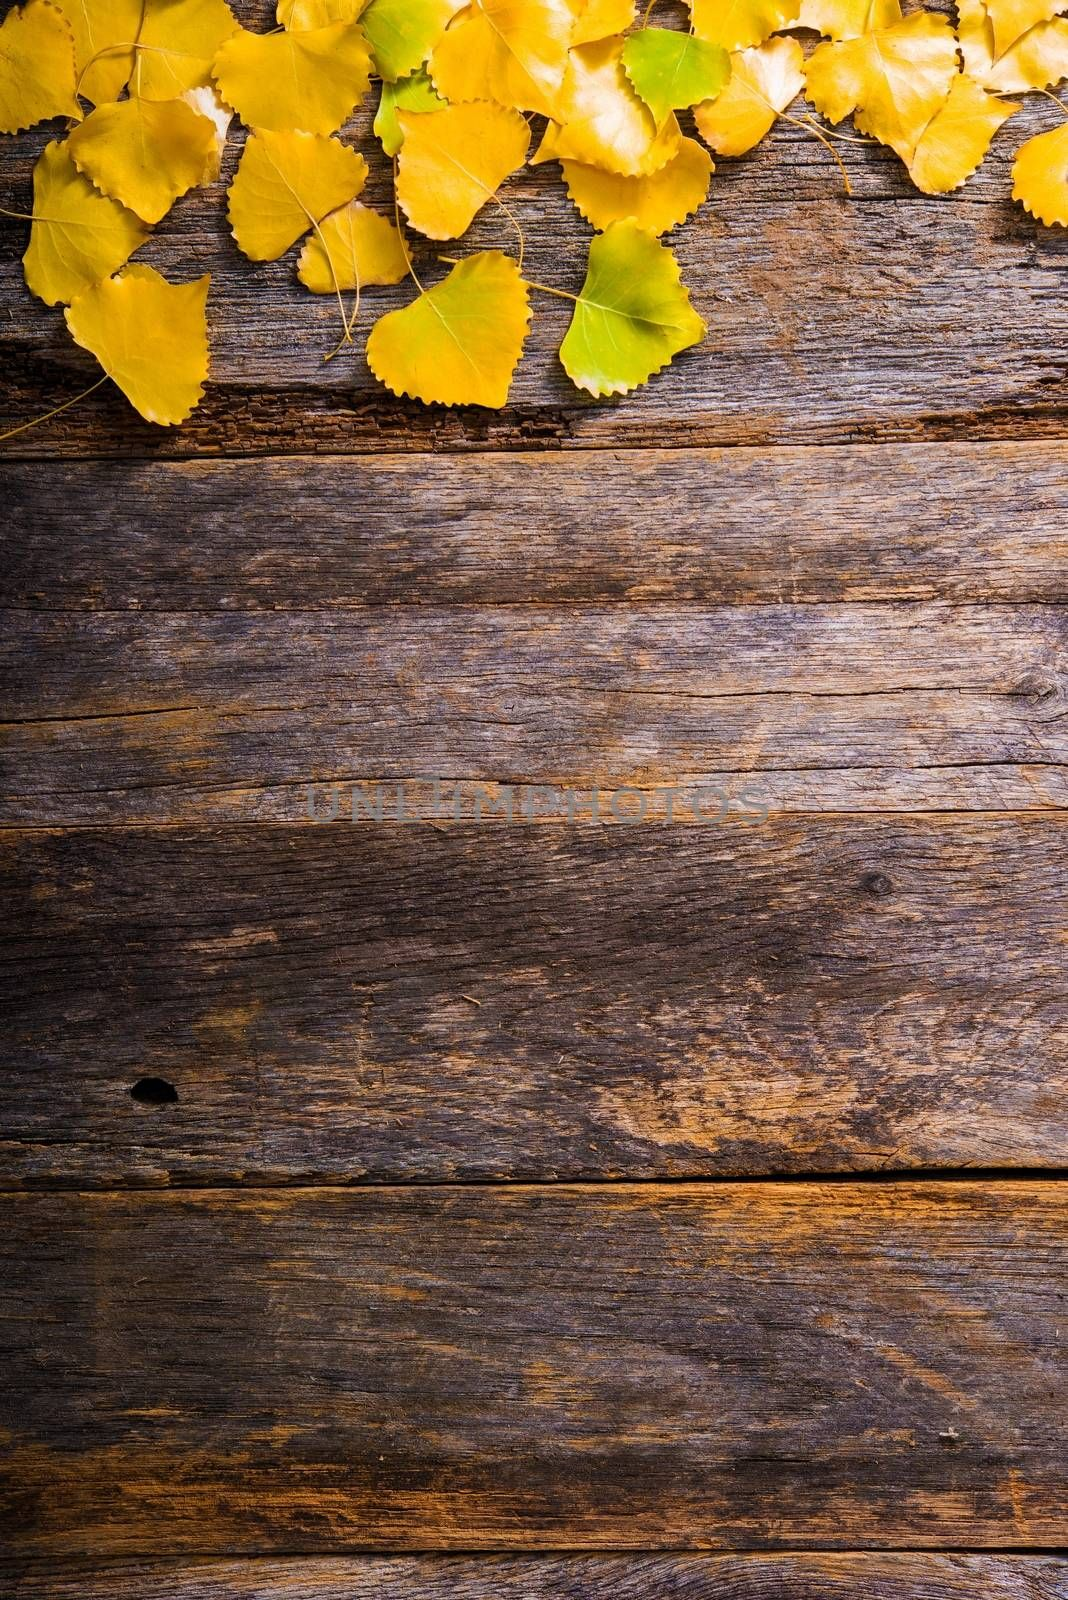 Fall Wooden Background with Yellow Aspen Tree Leaves and Copy Space Below. Aged Wood Planks Autumn Backdrop.